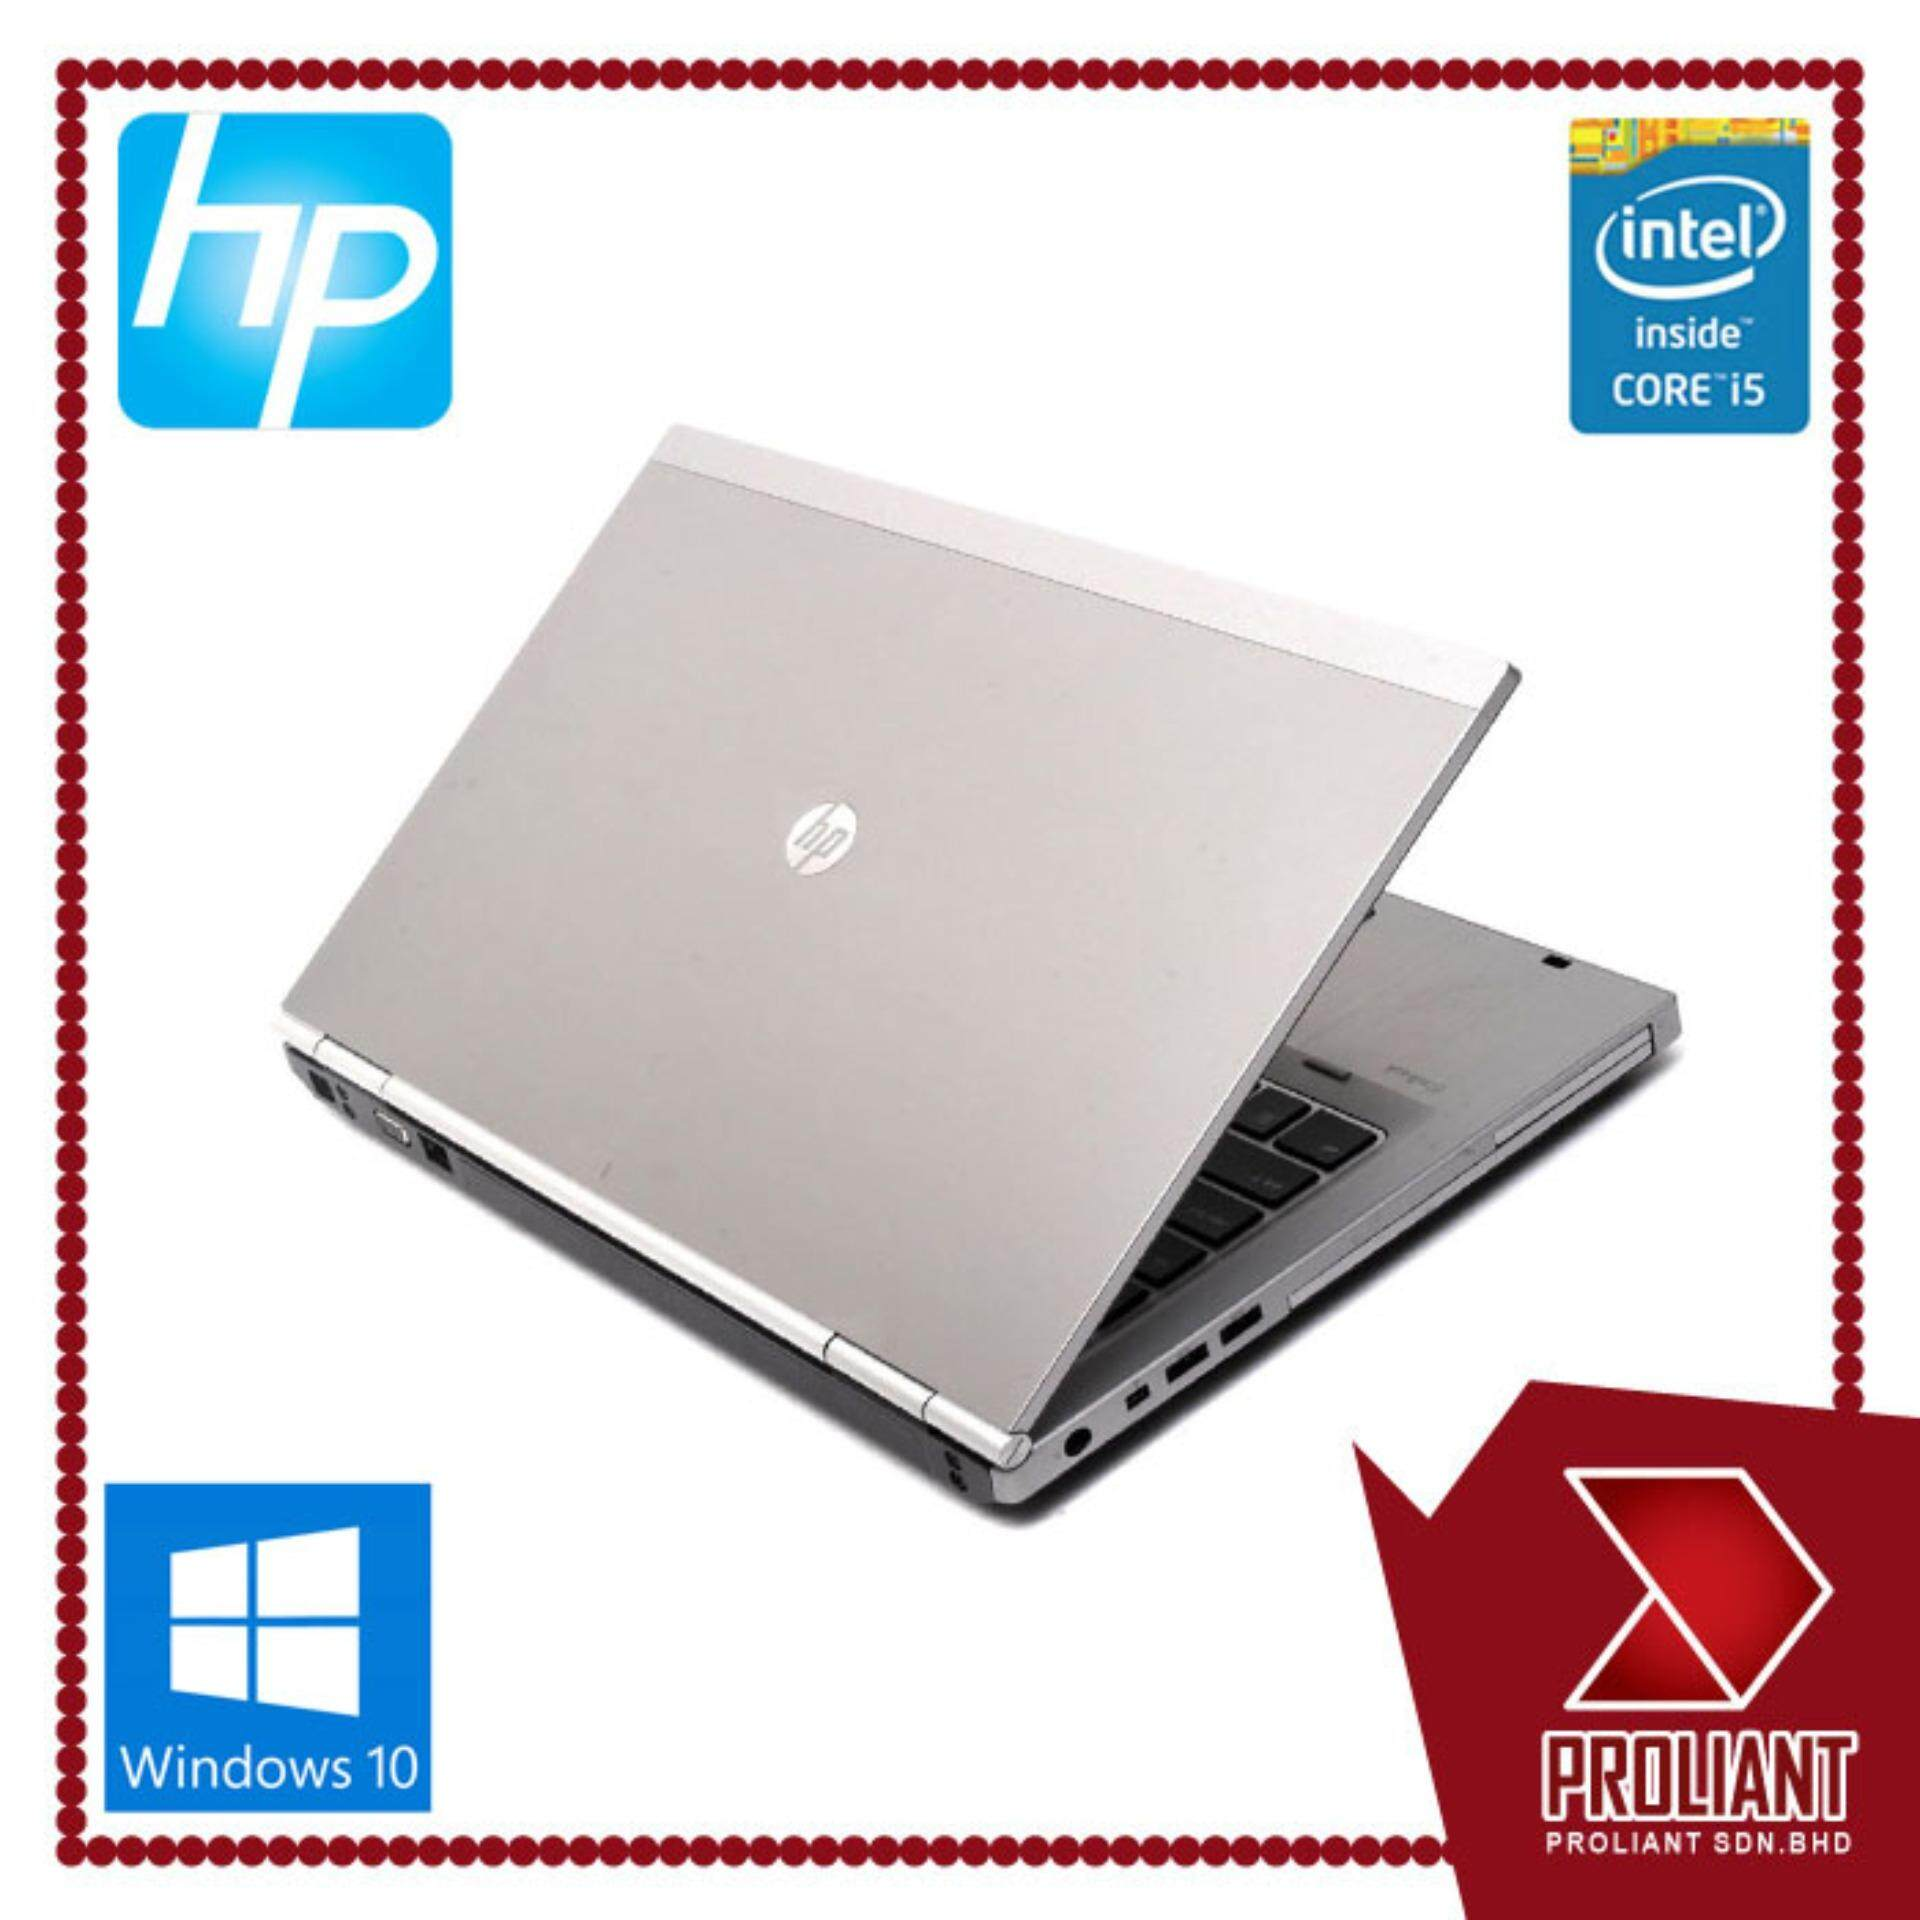 HP ELITEBOOK 8470P CORE I5  4GB RAM  500GBHDD  ALUMINIUM BODY Malaysia